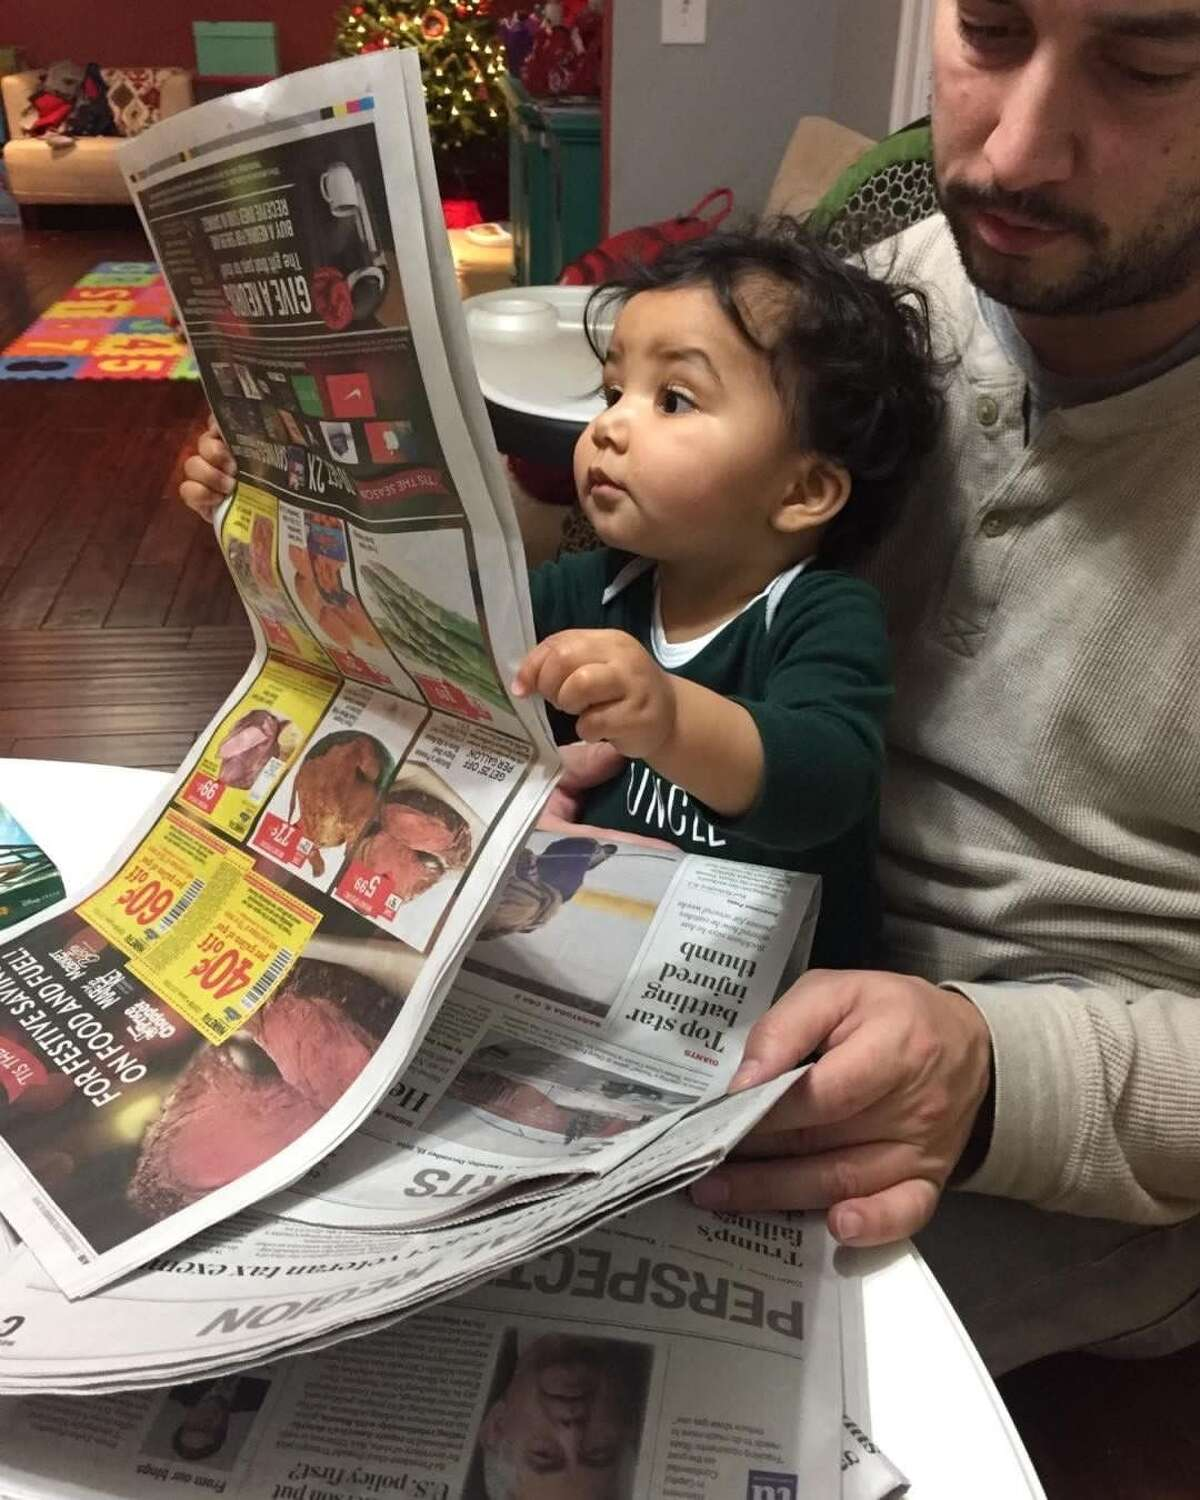 Alexander Bailey, who recently turned 1, seems quite interested in the Times Union (even if it is upside down.) Alexander, sitting on the lap of his father Kevin Bailey, looked at the paper for quite a while, his mom Tiffany told her mother-in-law Bonnie Mariano, who passed this along to us. She also notes that the young reader raised an eyebrow during his perusal. The Baileys are from Wynantskill. (Tiffany Bailey)